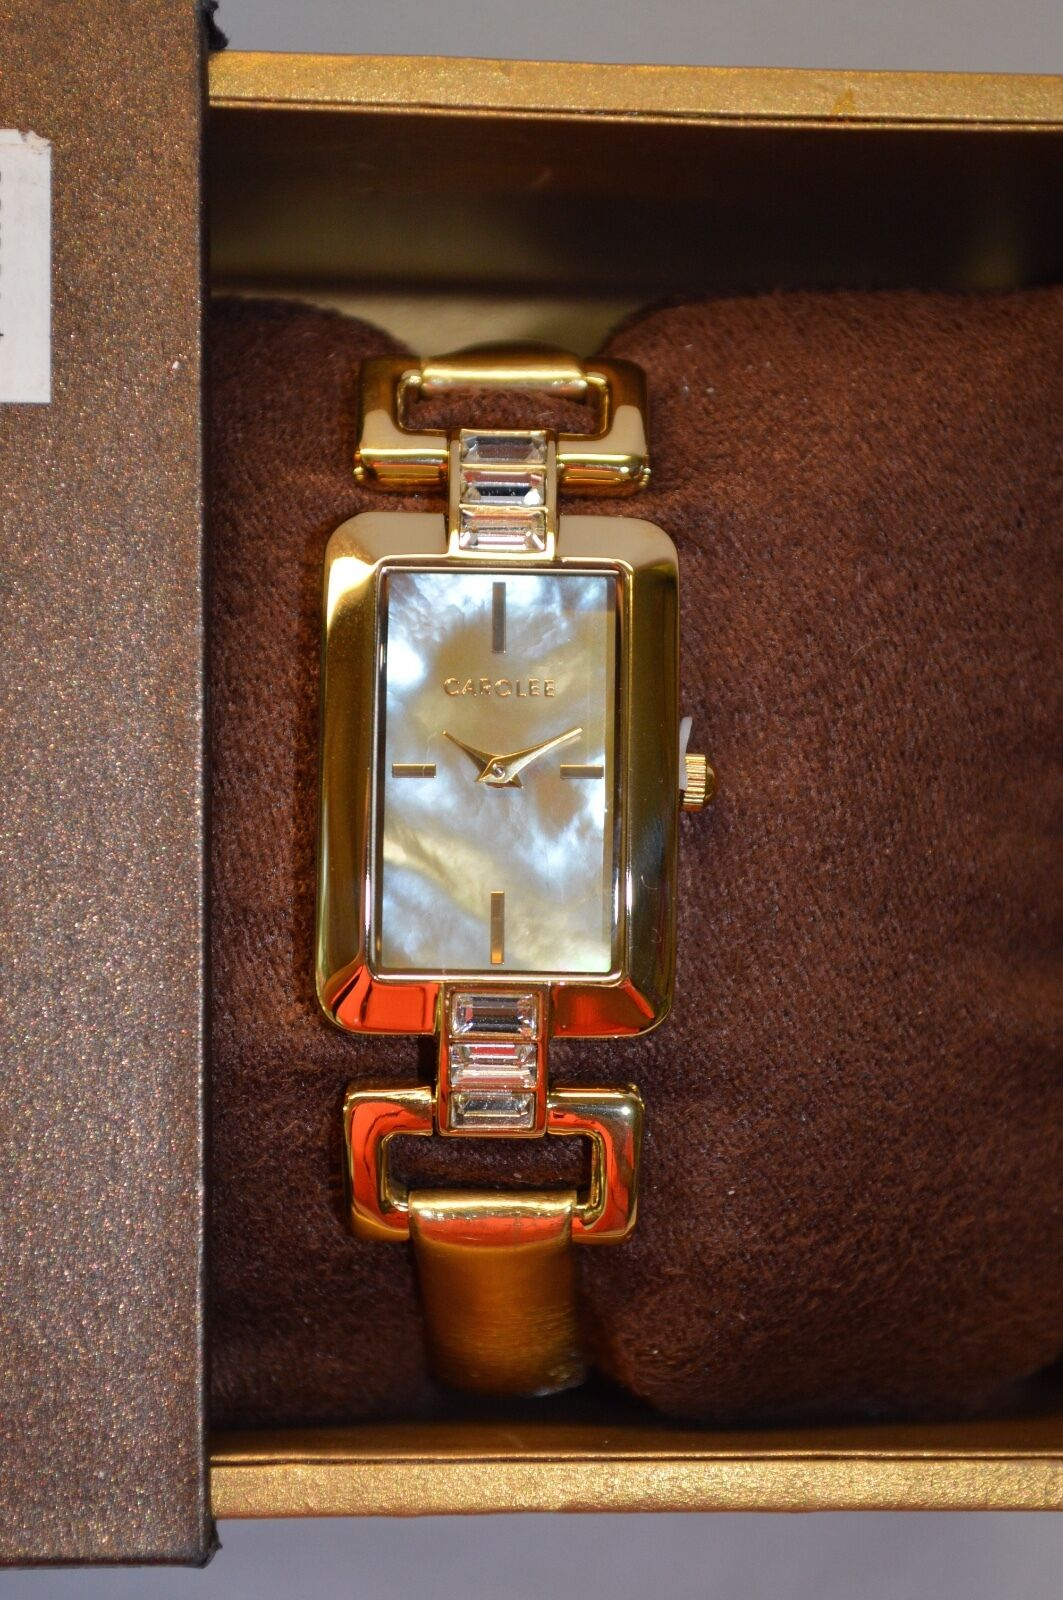 show watches e carolee product webe airlines fervor ladies watch and eshopping new set rose mymyty china gold jewellery